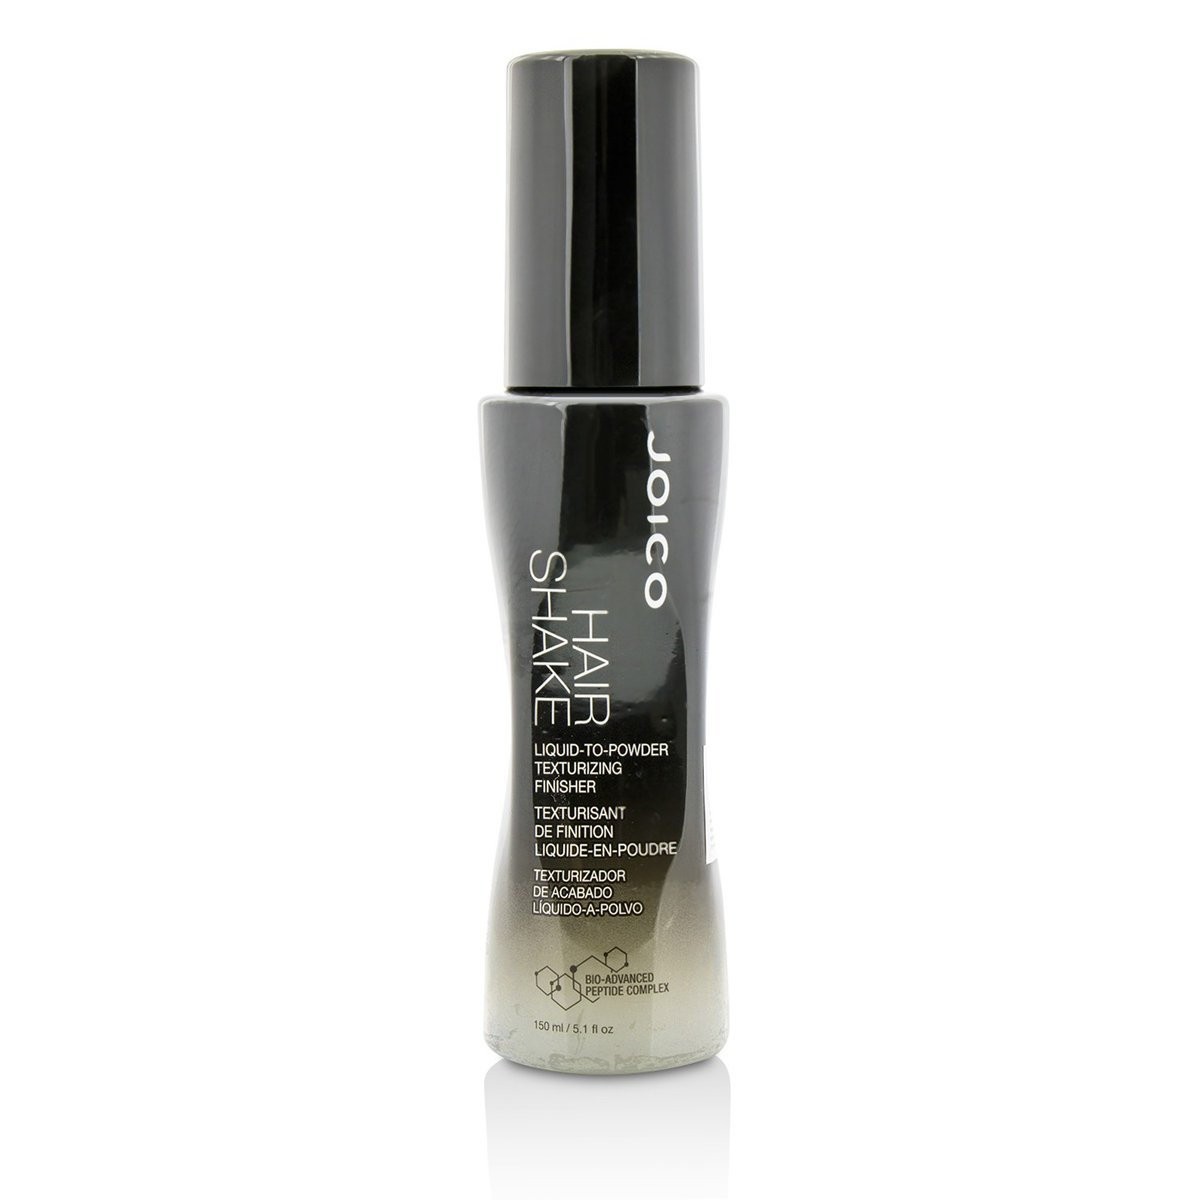 Styling Hair Shake Liquid-To-Powder Finishing Texturizer  -[Parallel Import Product]